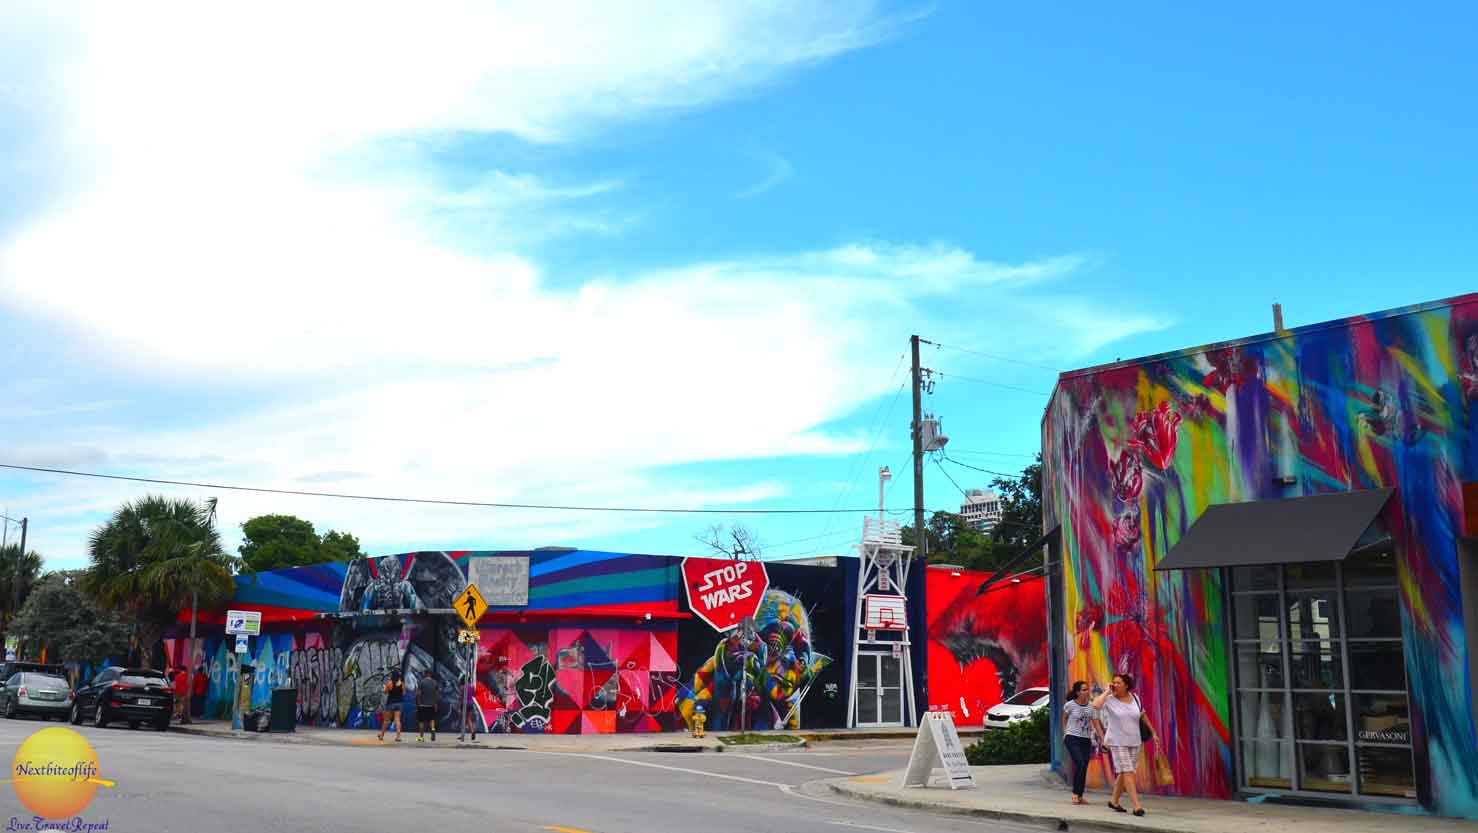 stop wars mural wynwood